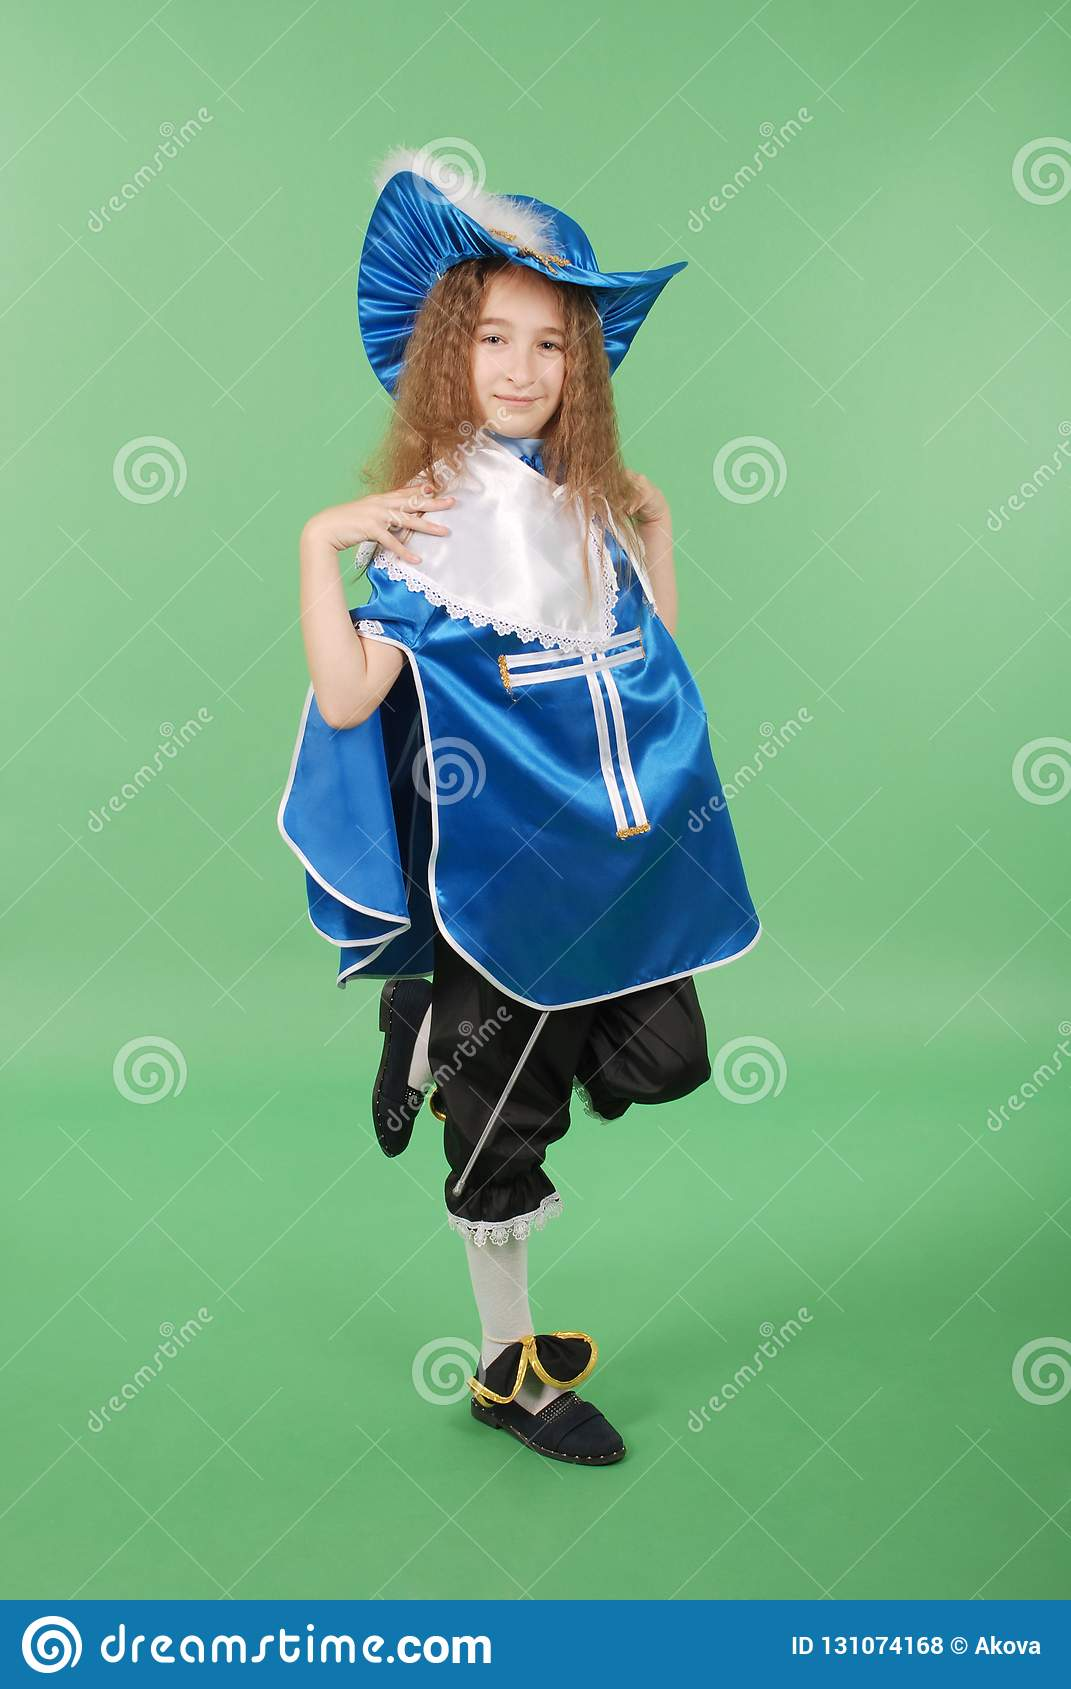 Young girl as a musketeer in blue costume with lovely blue hat with feathers